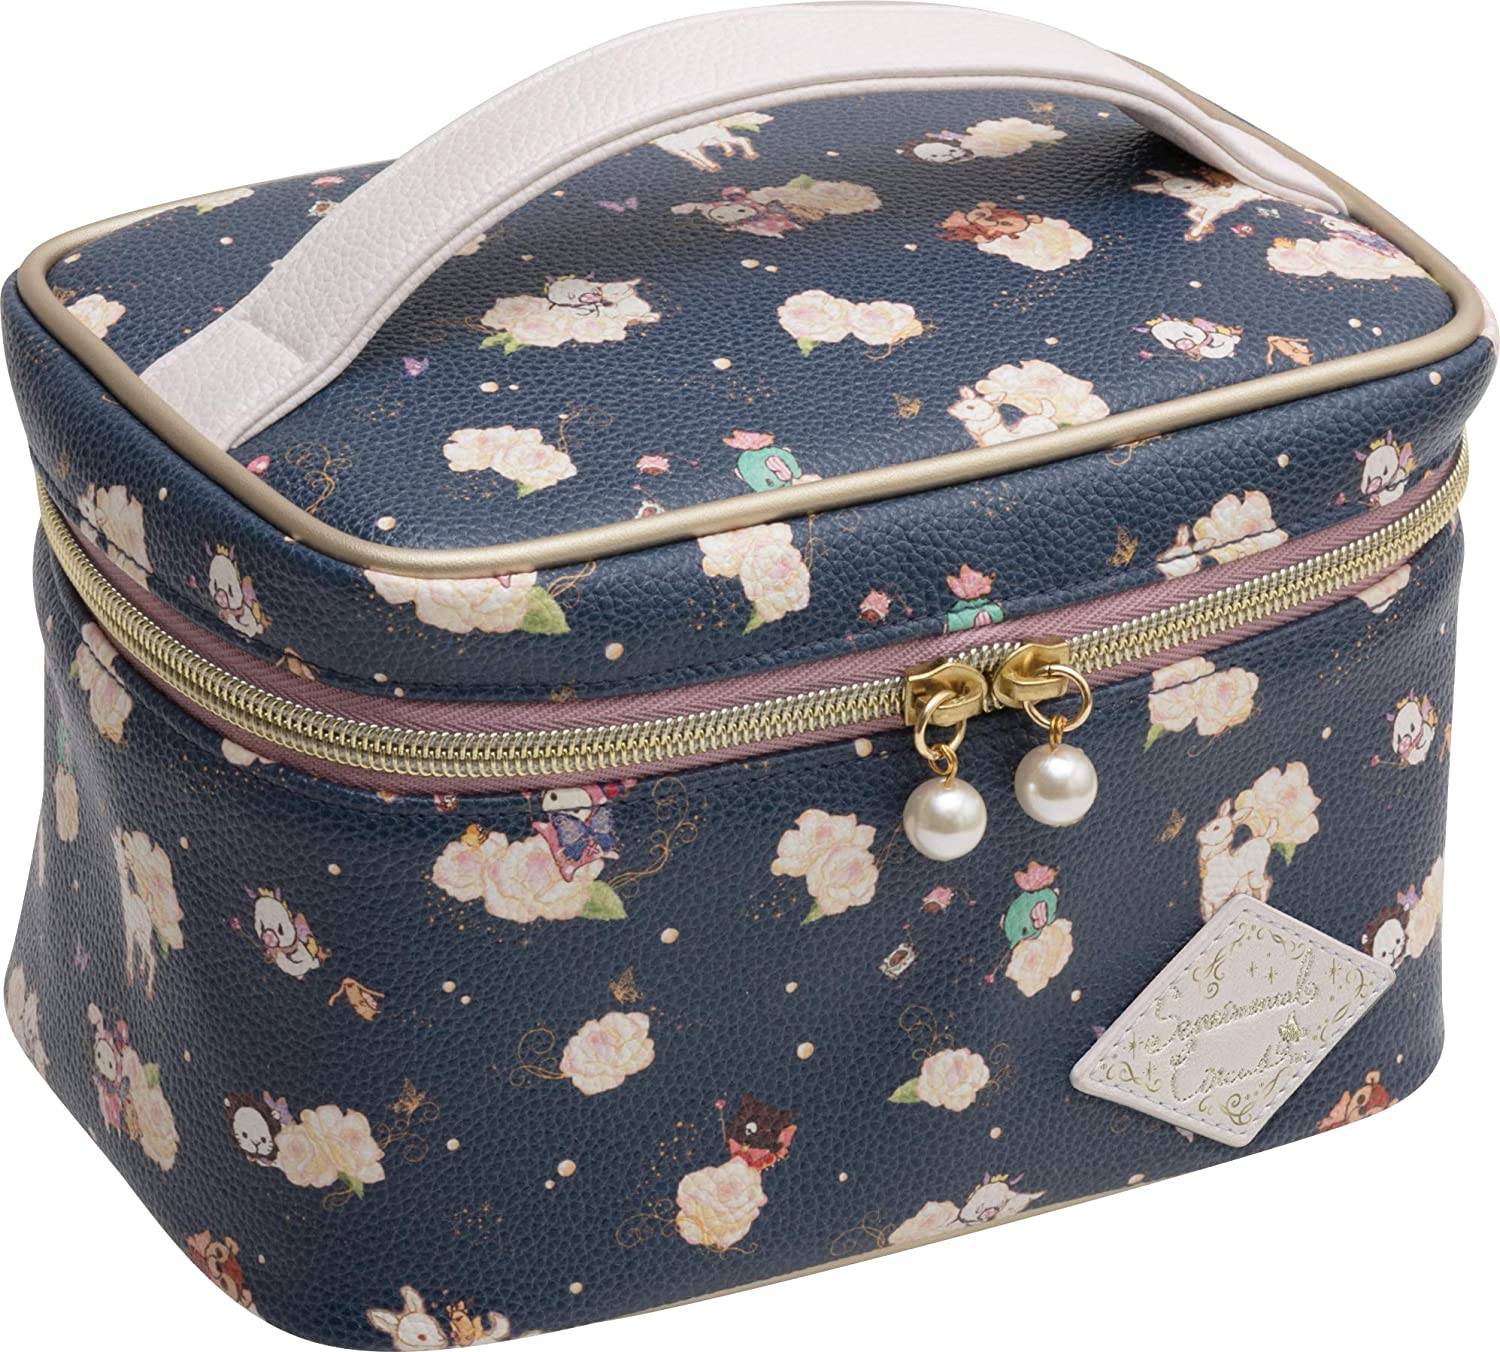 Sentimental Circus two-stage lunch box with chopsticks KA07601